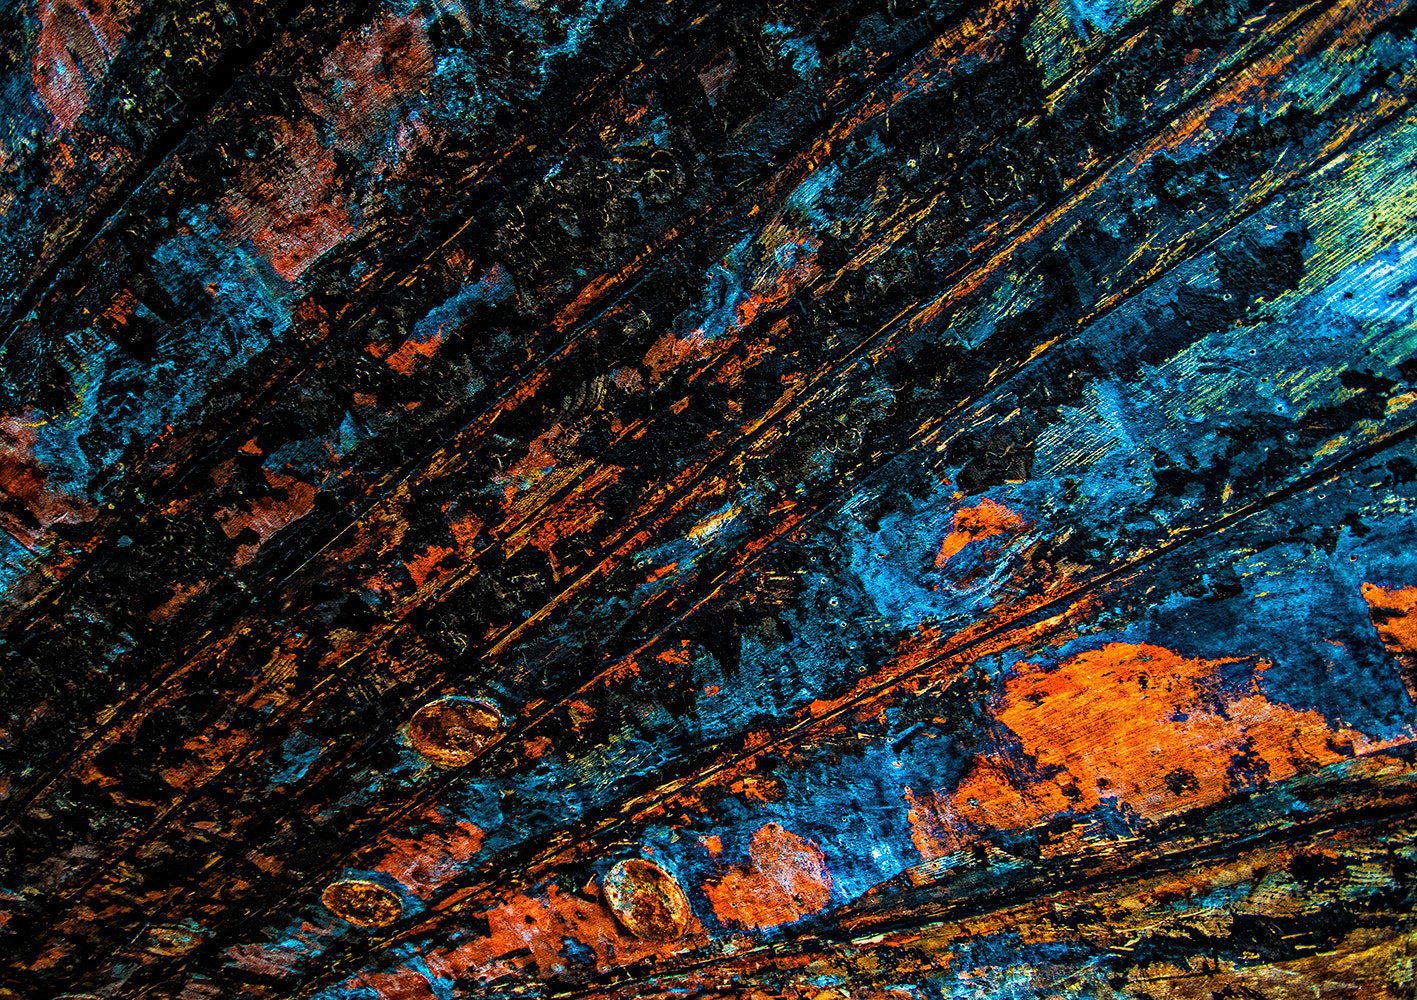 Photograph Abstract I  by Søren Udby on 500px